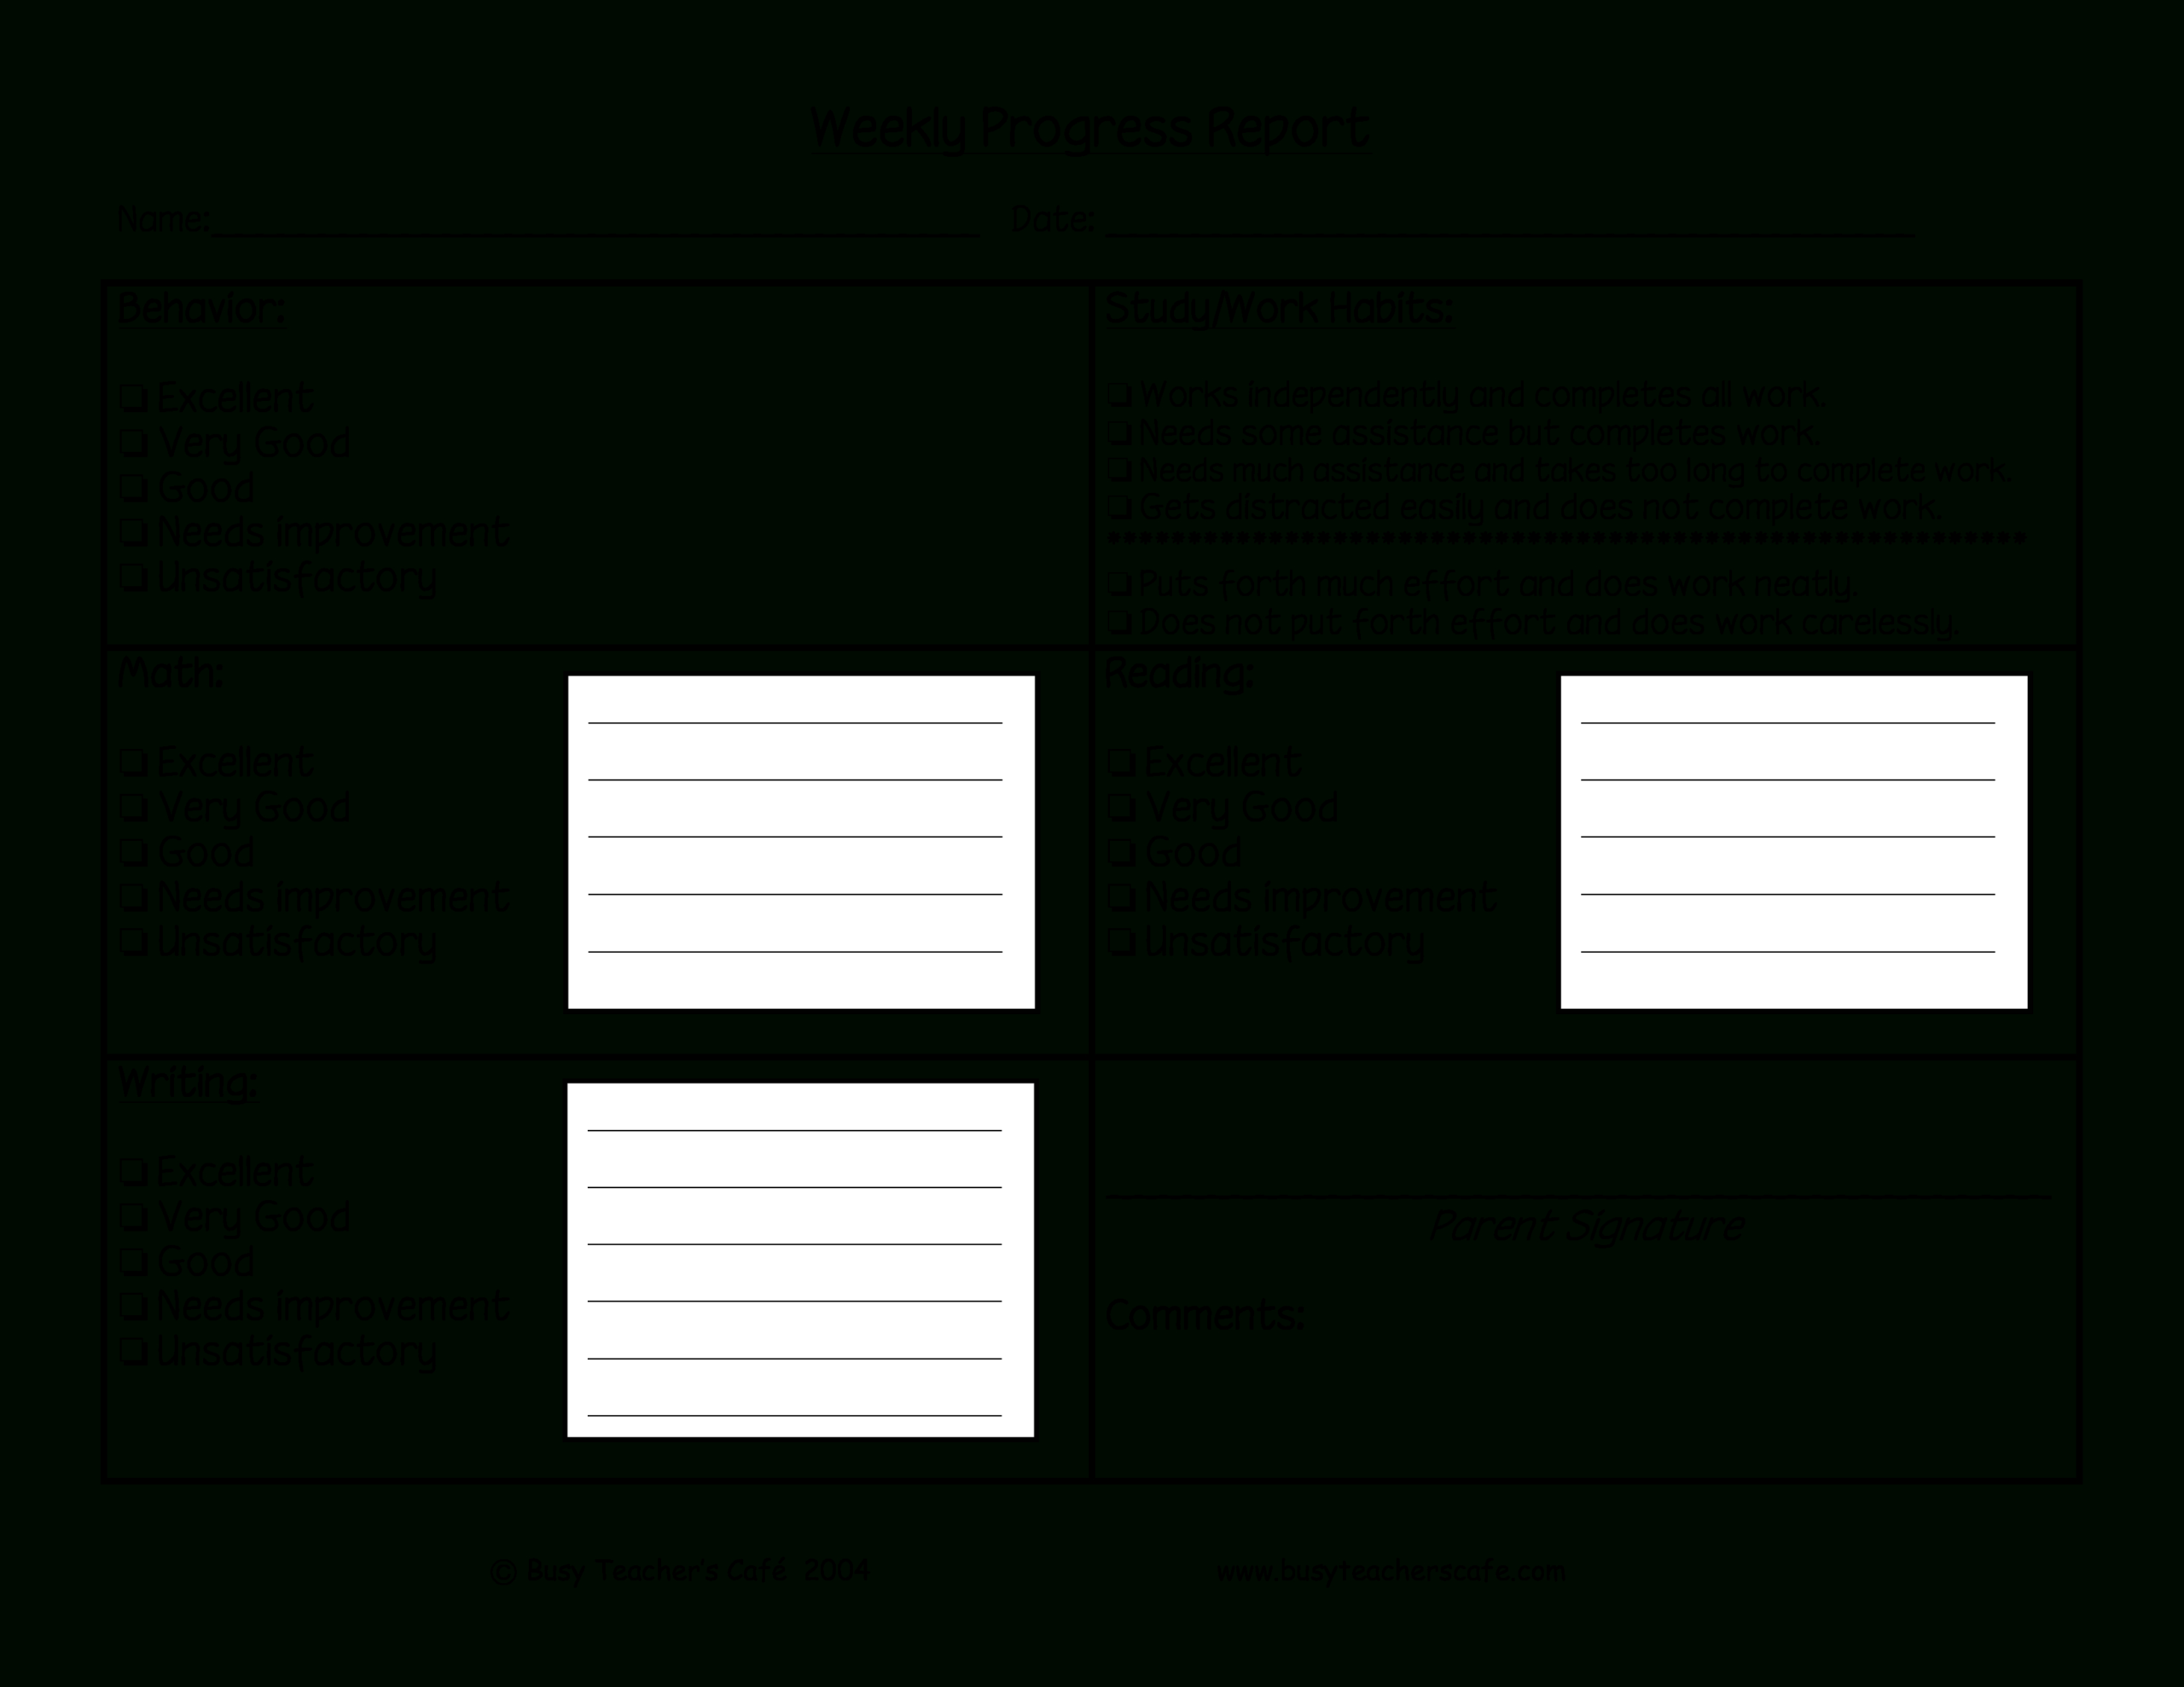 Weekly Student Behavior Report | Templates At Within Behaviour Report Template